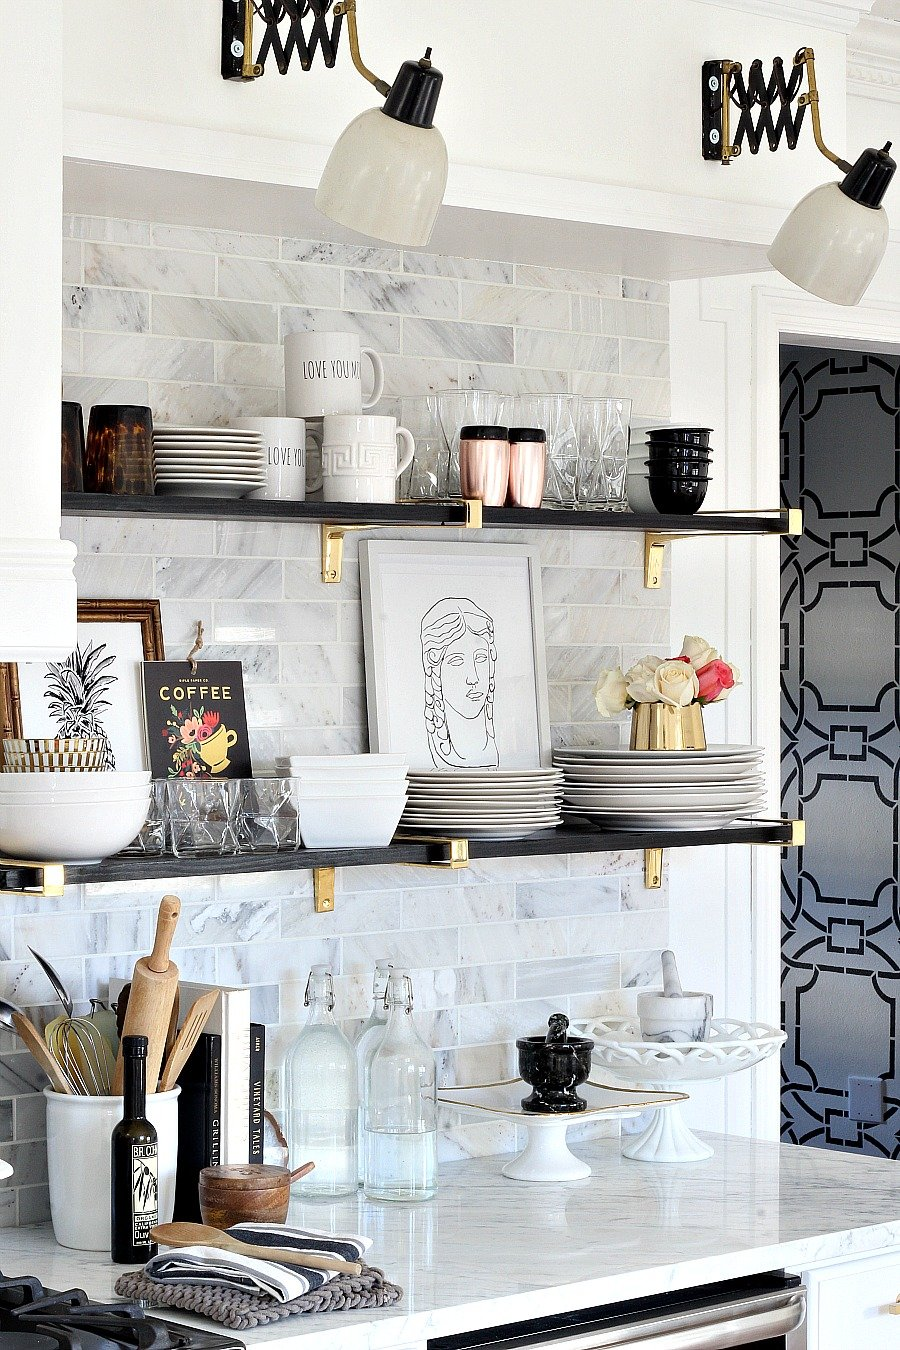 Open shelf ideas kitchen design network Floating shelf ideas for kitchen